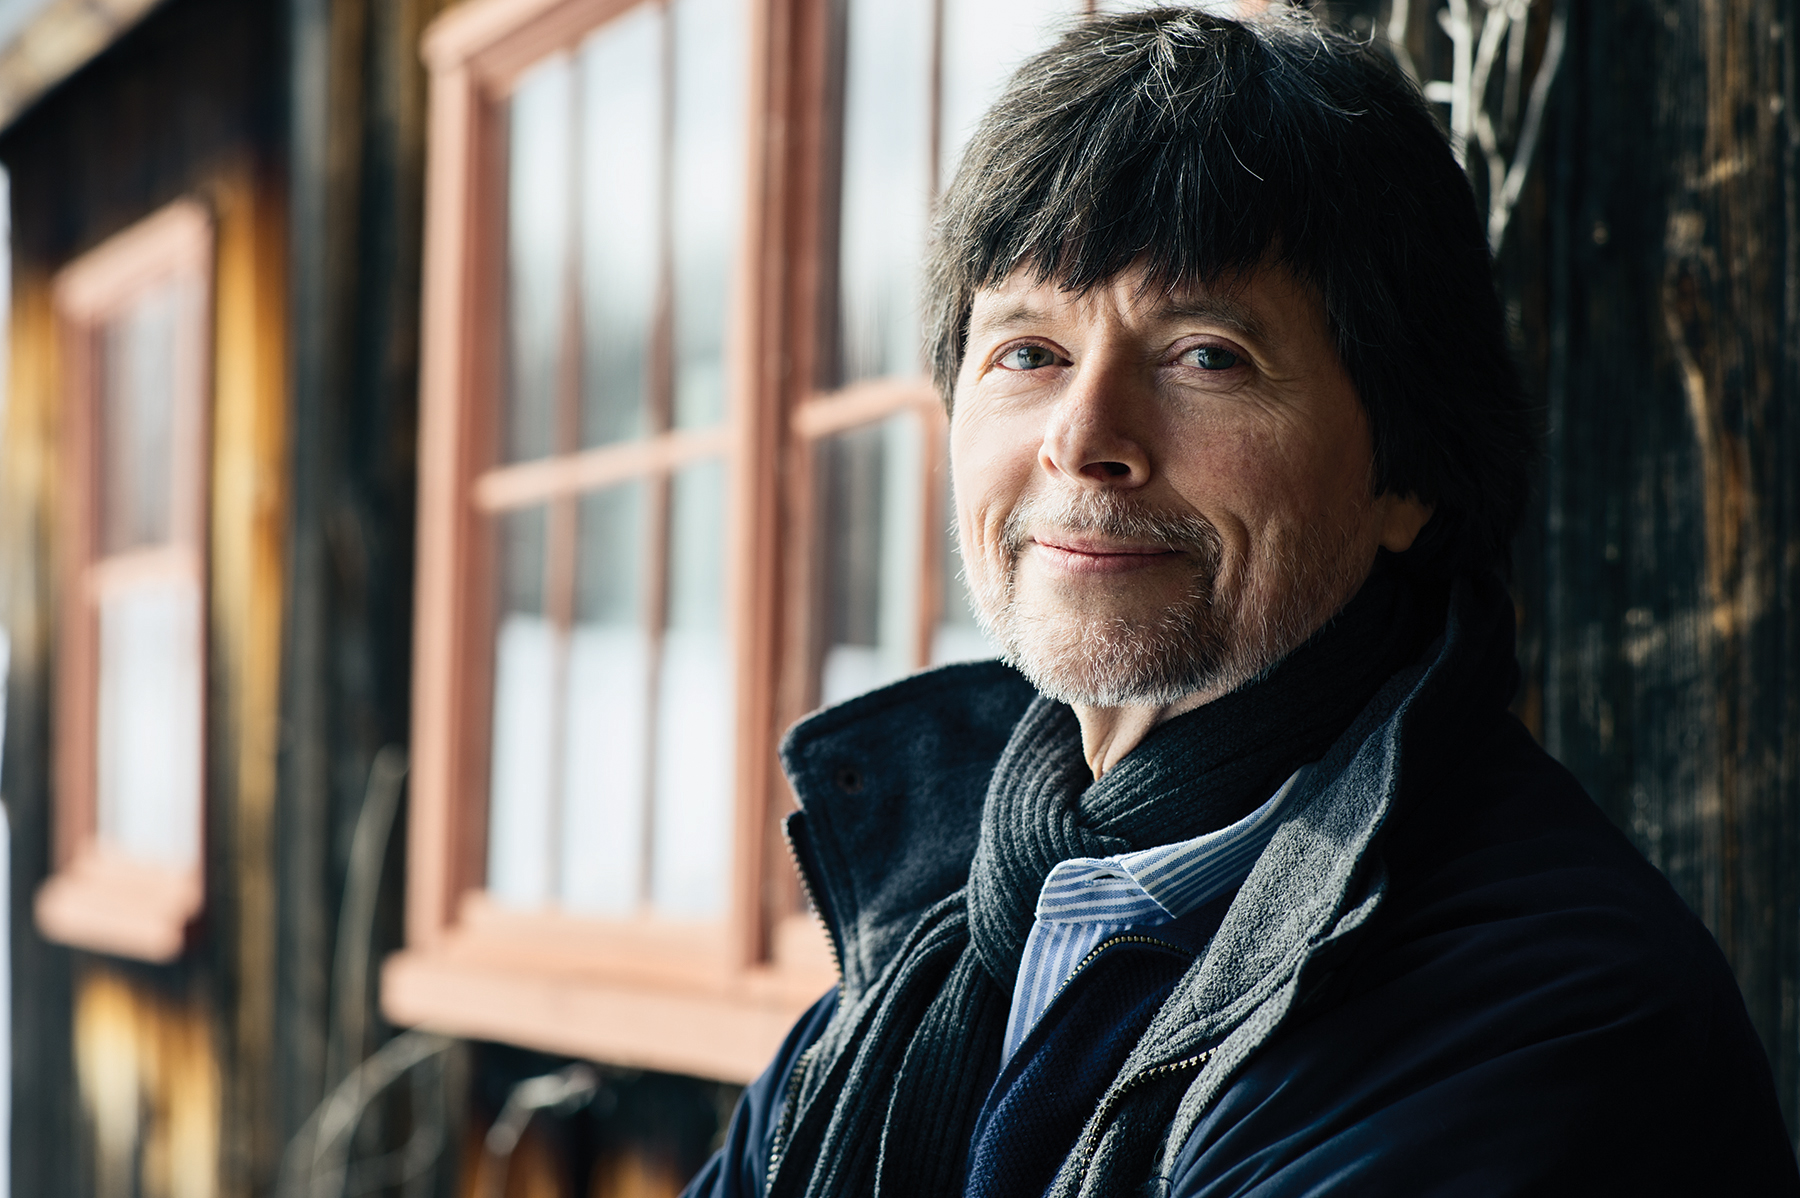 Ken Burns photographed by Tim Llewellyn